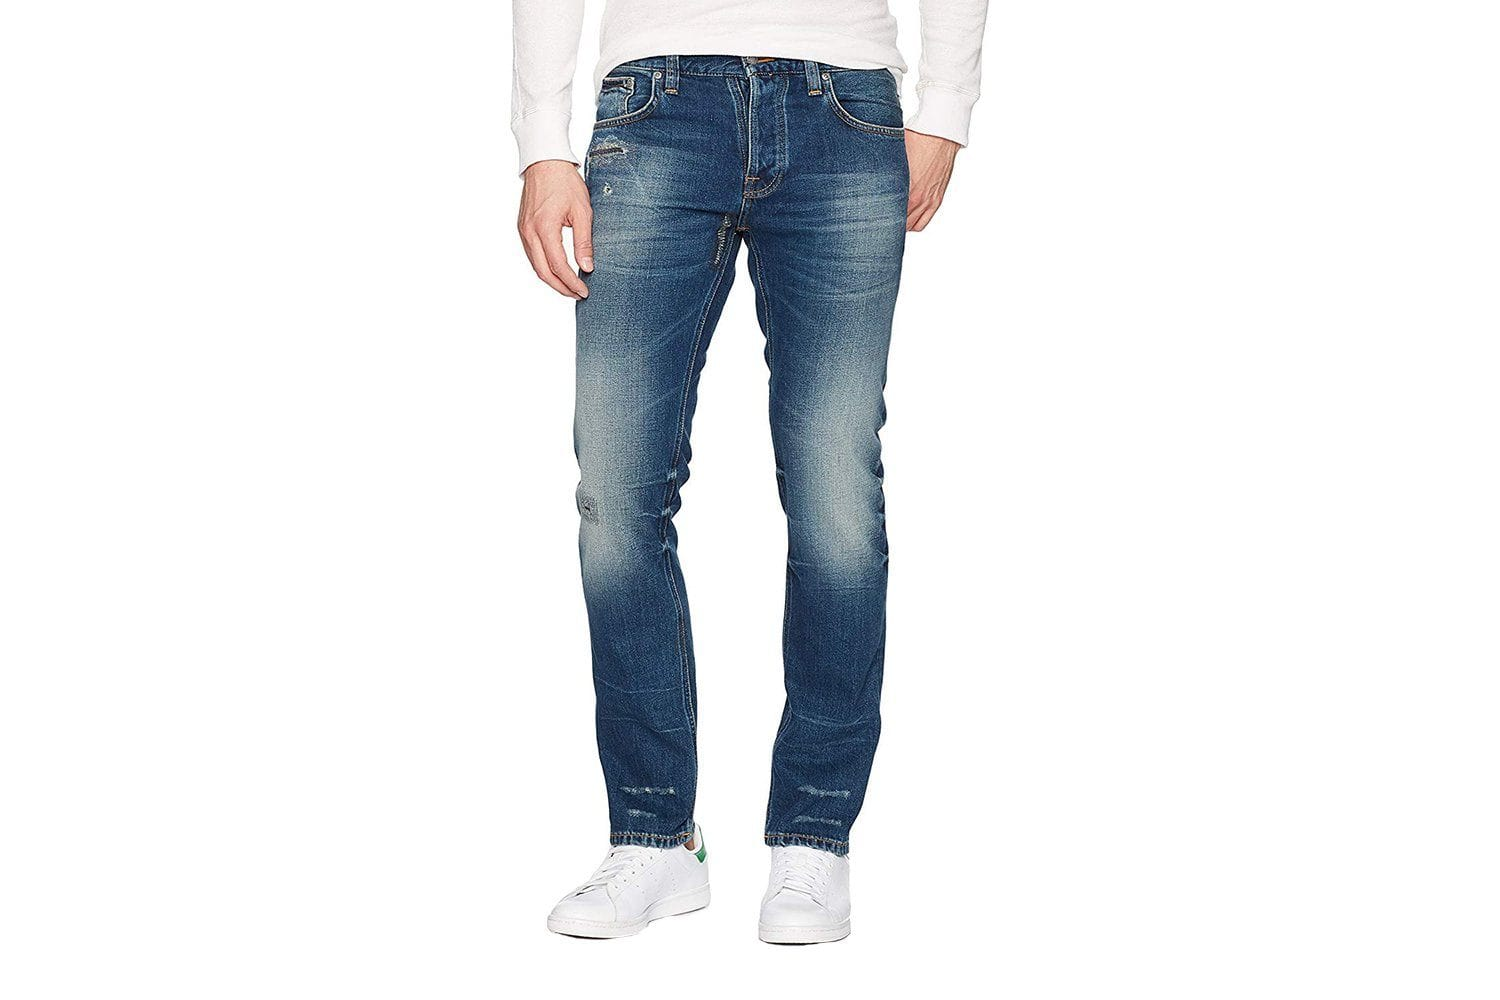 GRIM TRIM MENS SOFTGOODS NUDIE JEANS NATH REPLICA 29/32